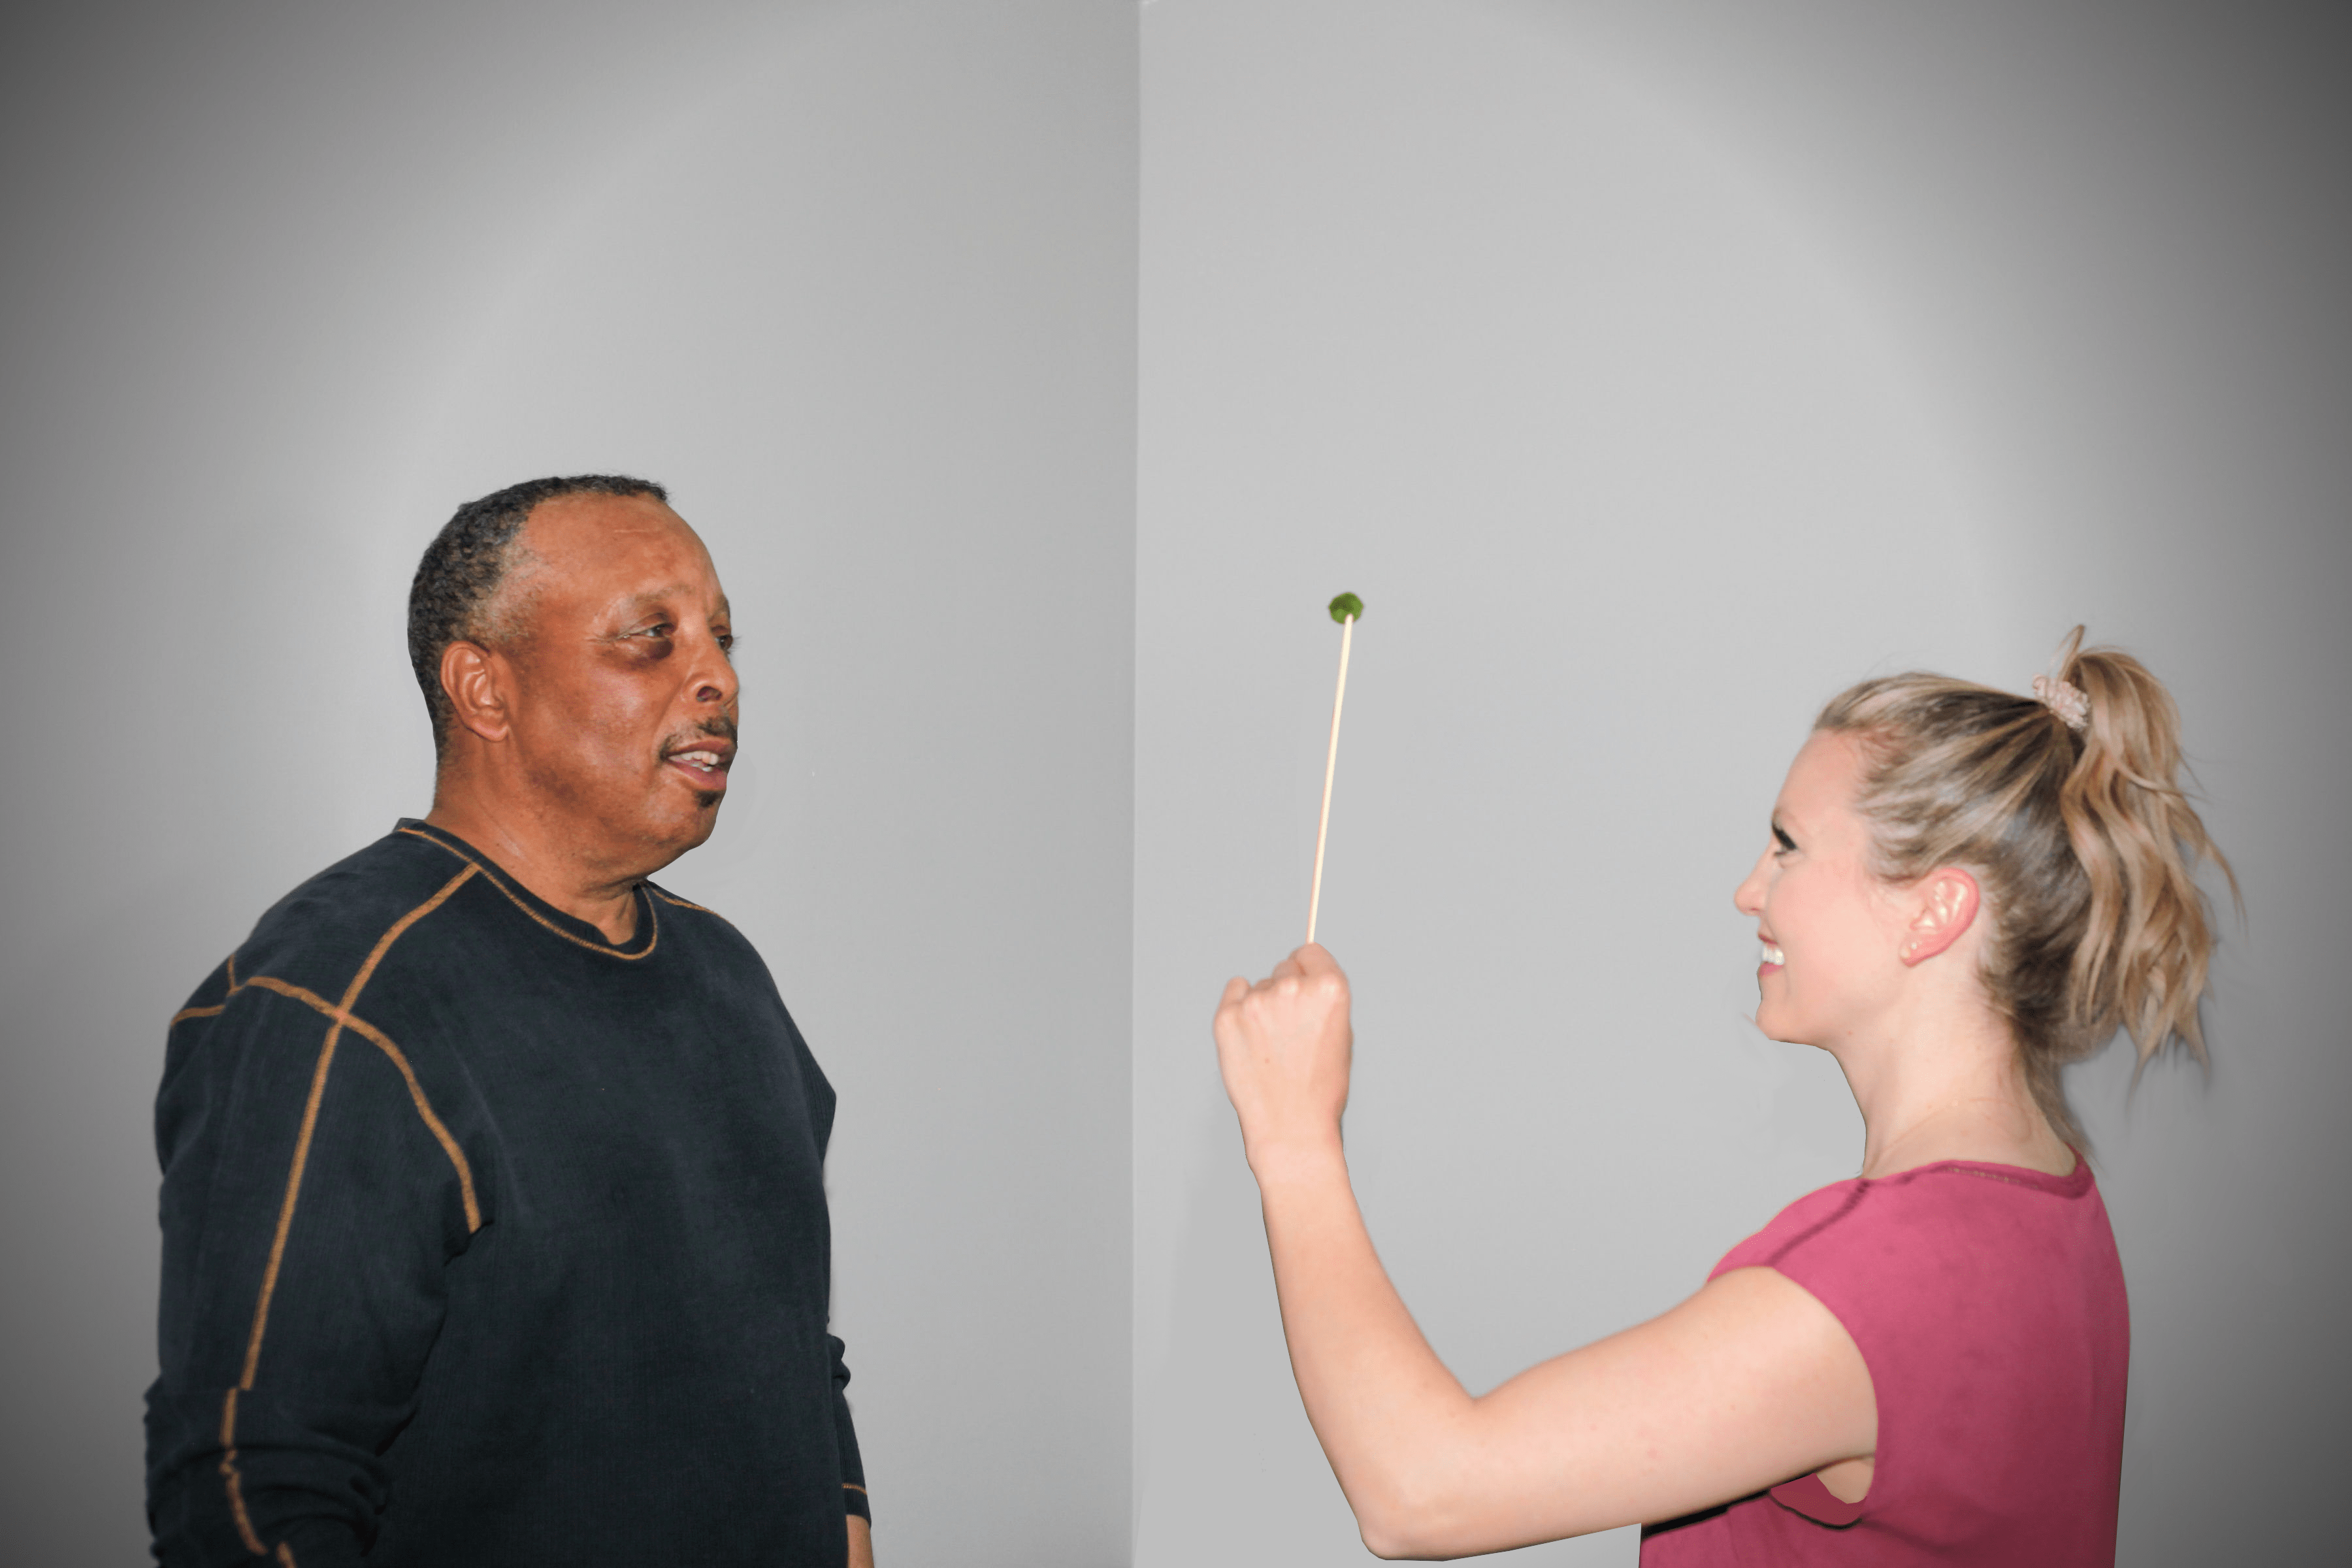 A therapist giving a patient an eye test.